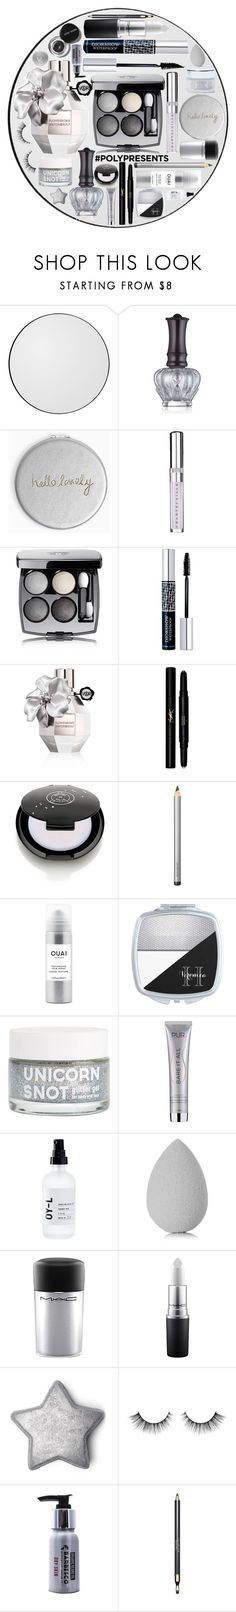 """#PolyPresents: Sparkly Beauty"" by princess13inred ❤ liked on Polyvore featuring beauty, AYTM, Anna Sui, Katie Loxton, Chantecaille, Chanel, Christian Dior, Viktor & Rolf, Yves Saint Laurent and Laura Mercier"